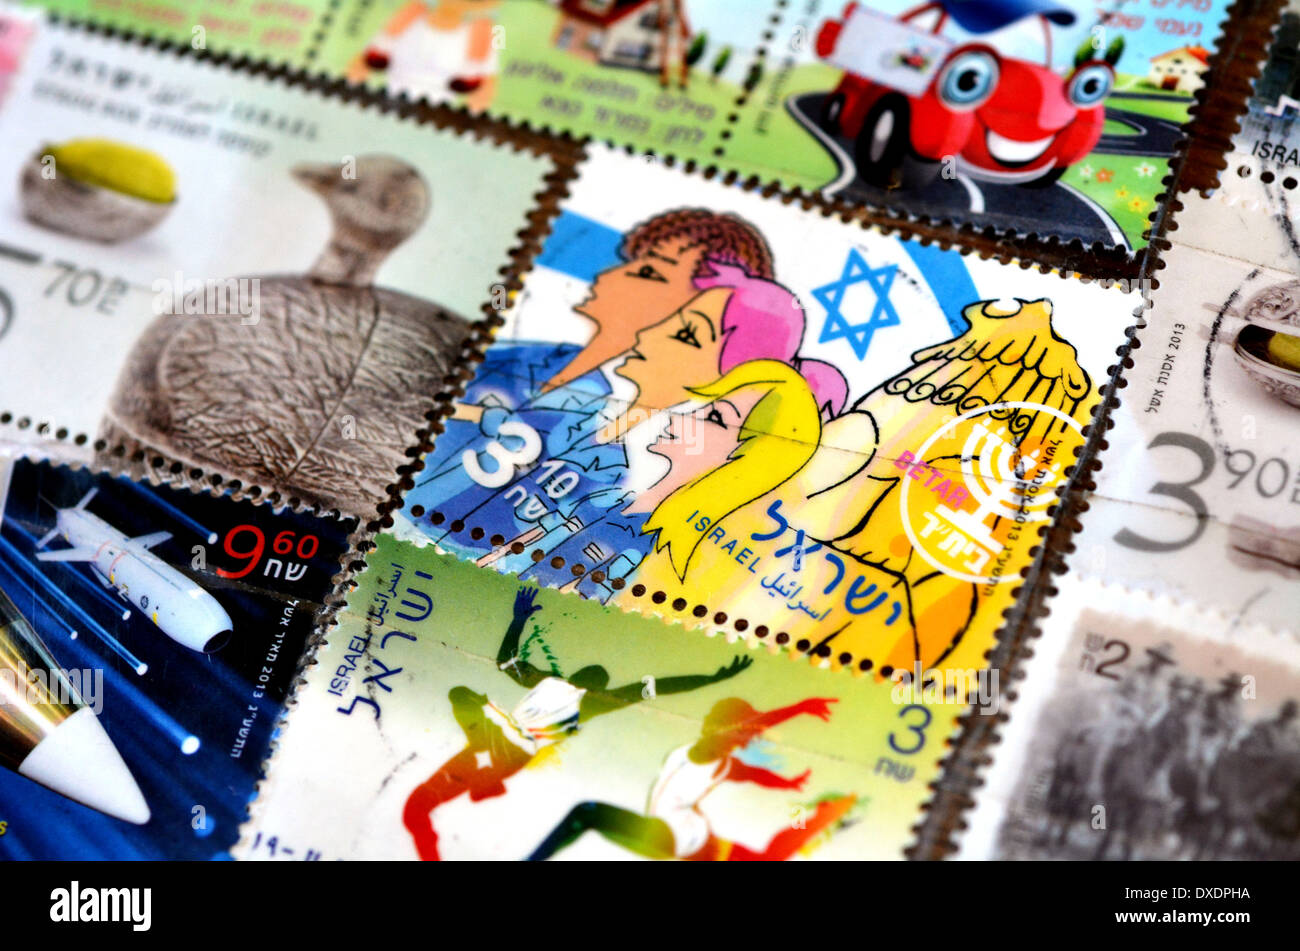 Collection of new modern Israeli stamps made by Israel Philatelic Service. - Stock Image